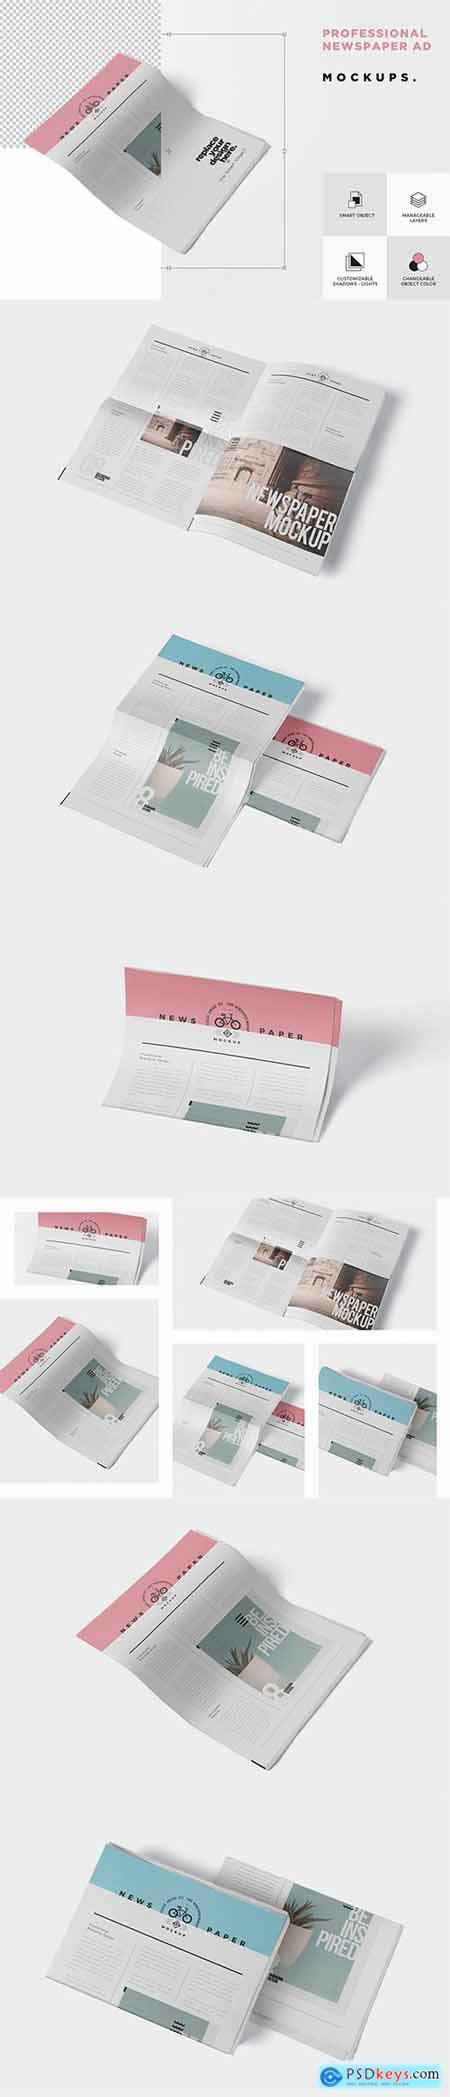 Professional Newspaper Ad PSD Mockups